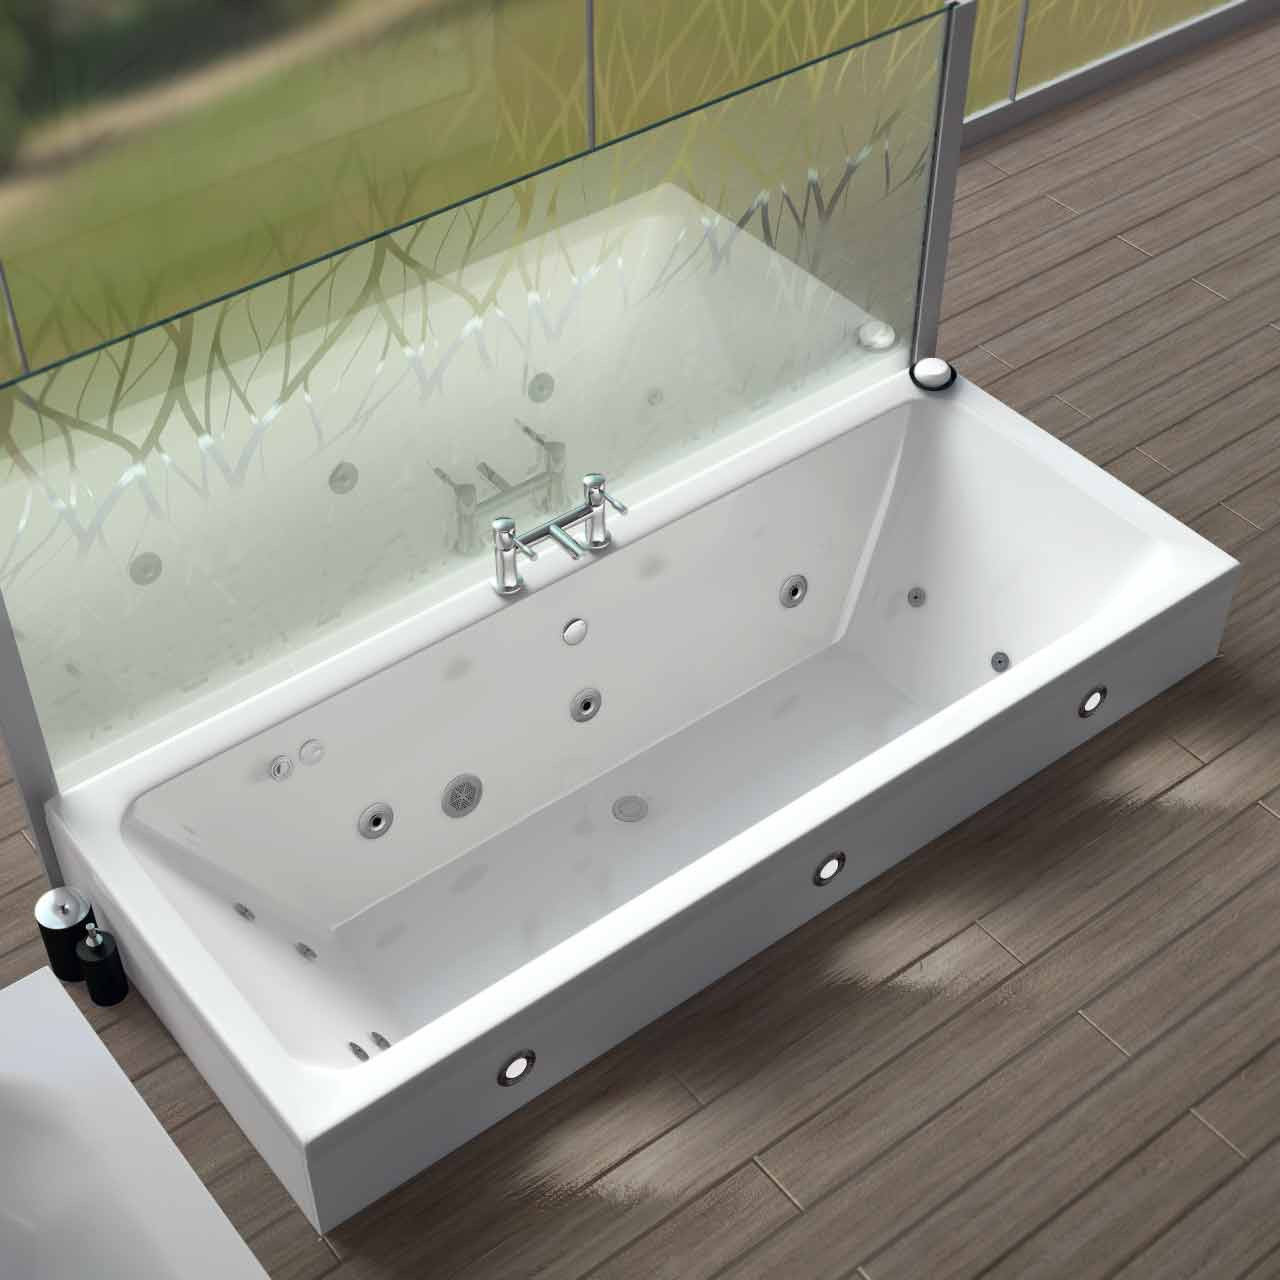 Square Centre Tap 12 Jet Chrome Flat Jet Whirlpool Bath 1800x800mm